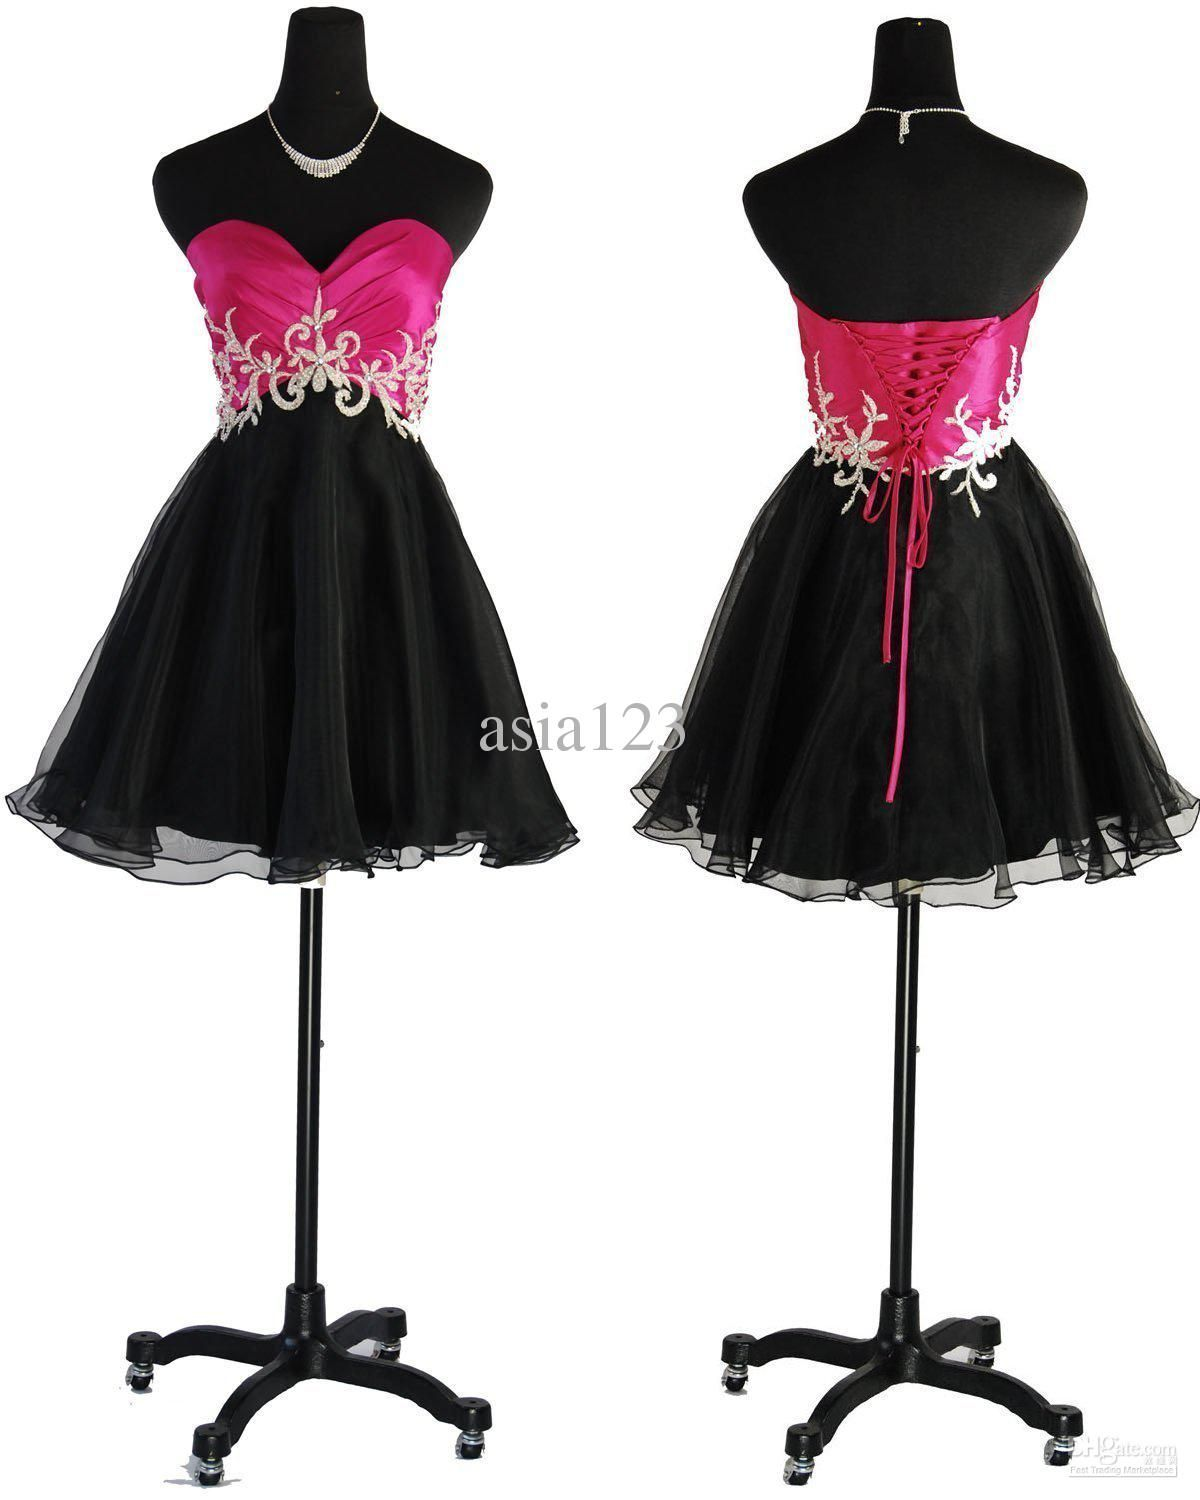 Images of Hot Pink And Black Dresses - Reikian